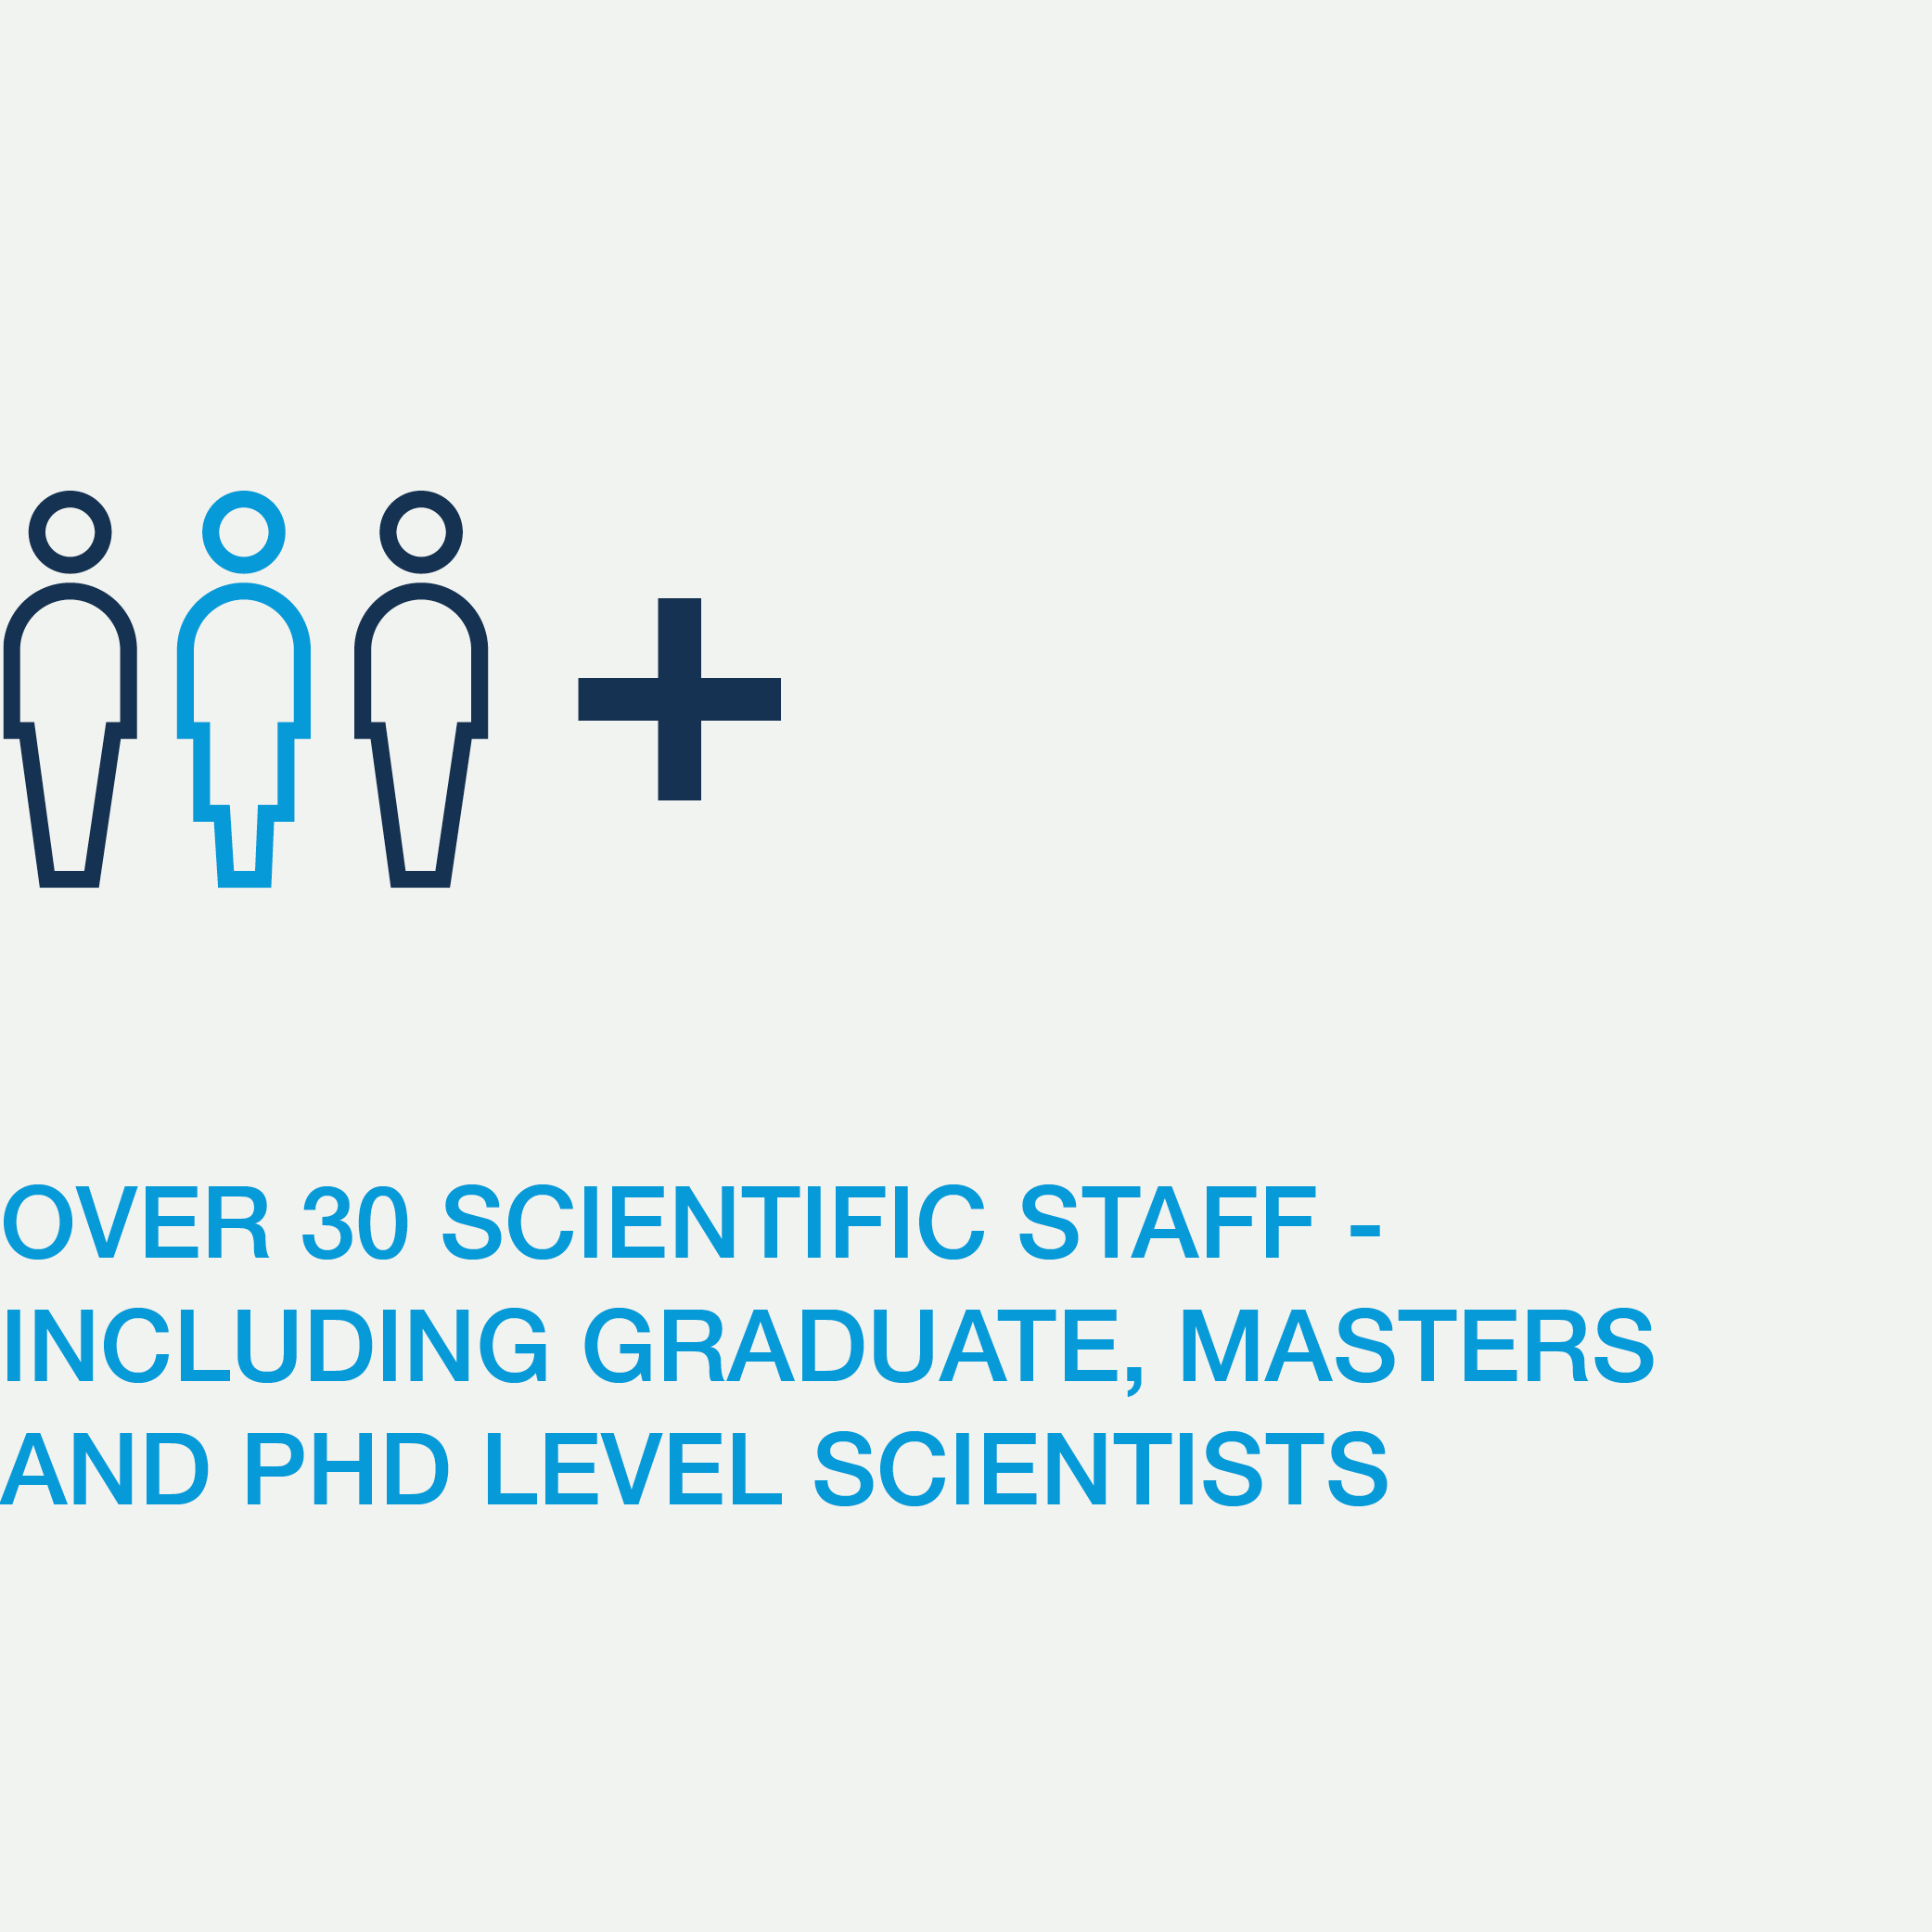 At-a-glance-over-30-scientific-staff-icon.jpg